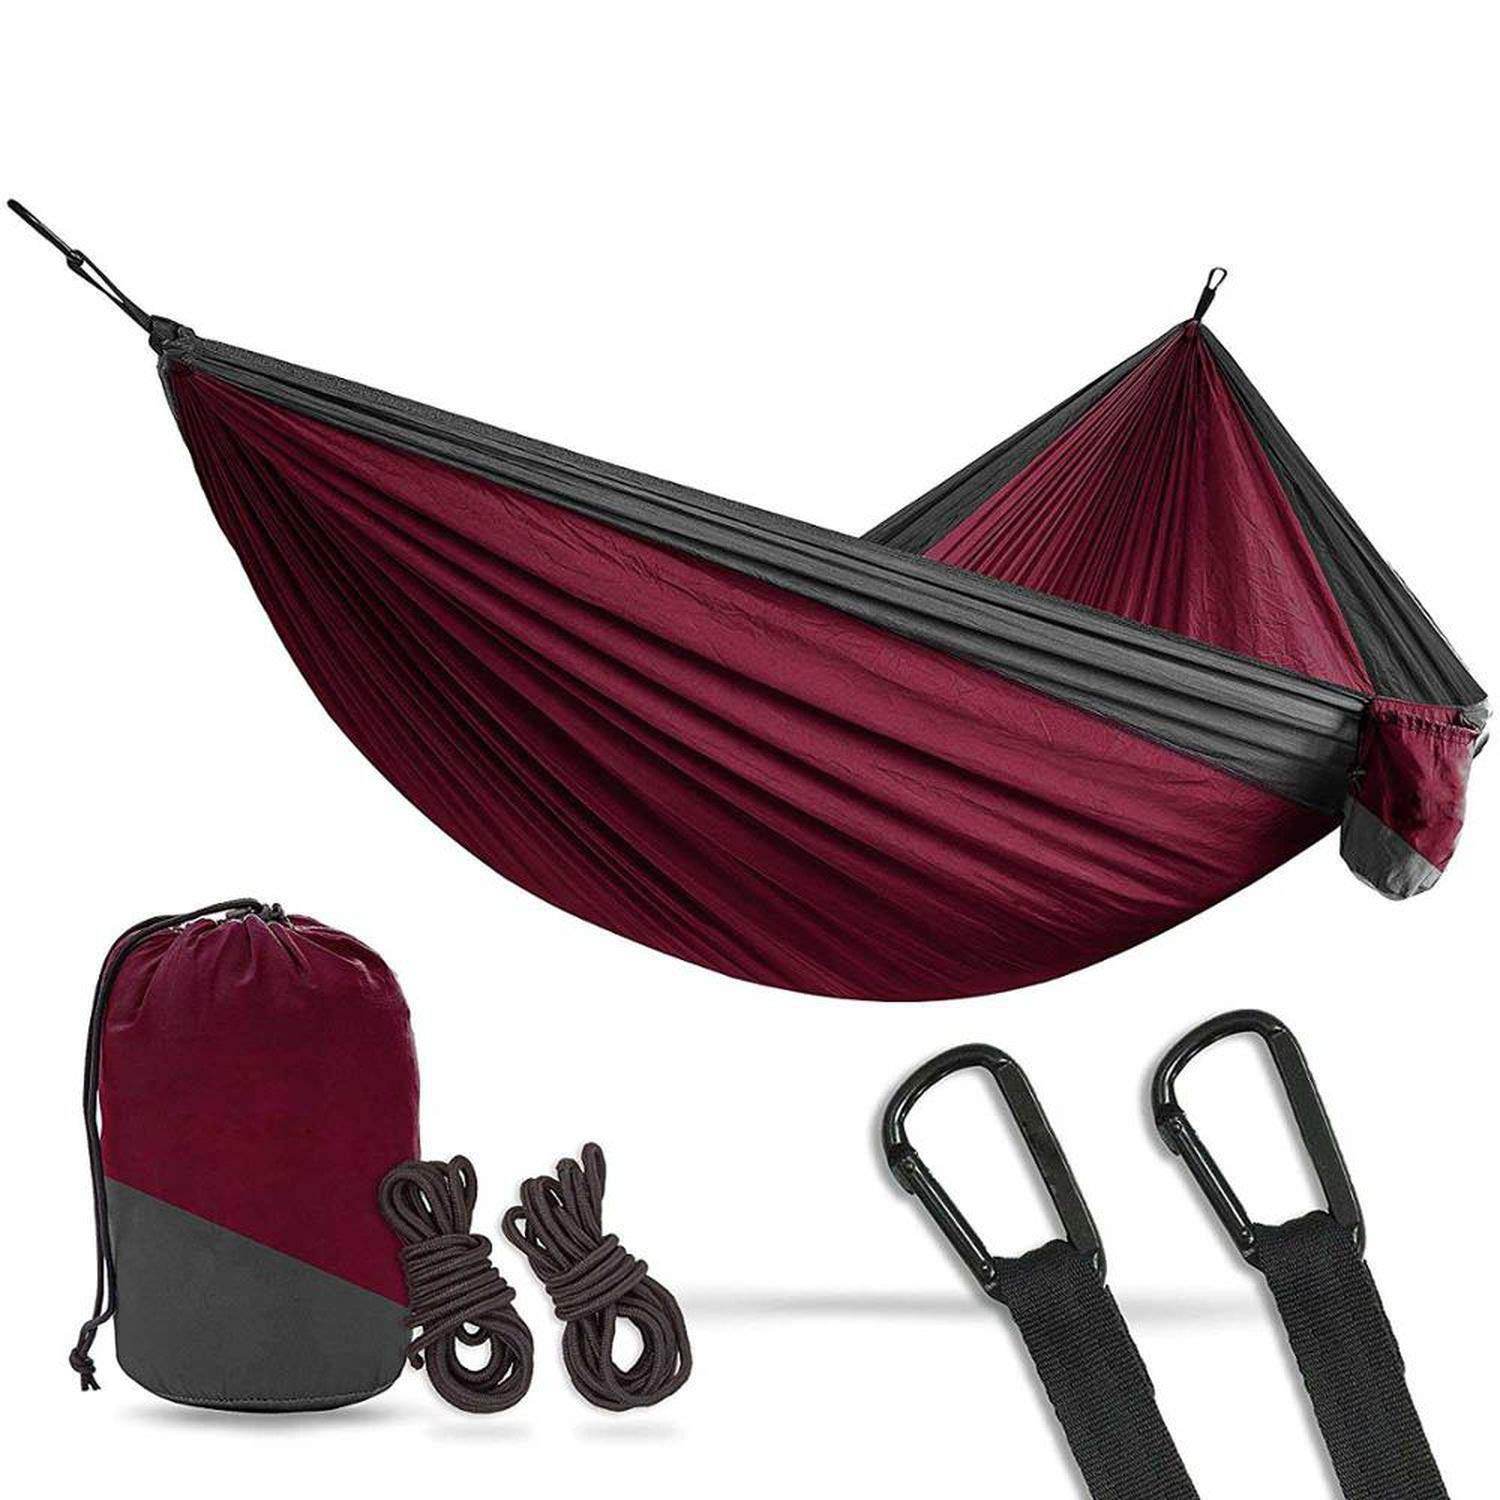 Maroon charcoal LiNever 2 Person Double Camping Hammock XL 10 Foot Nylon Portable Heavy Duty Holds 700Lb for Sitting Hanging